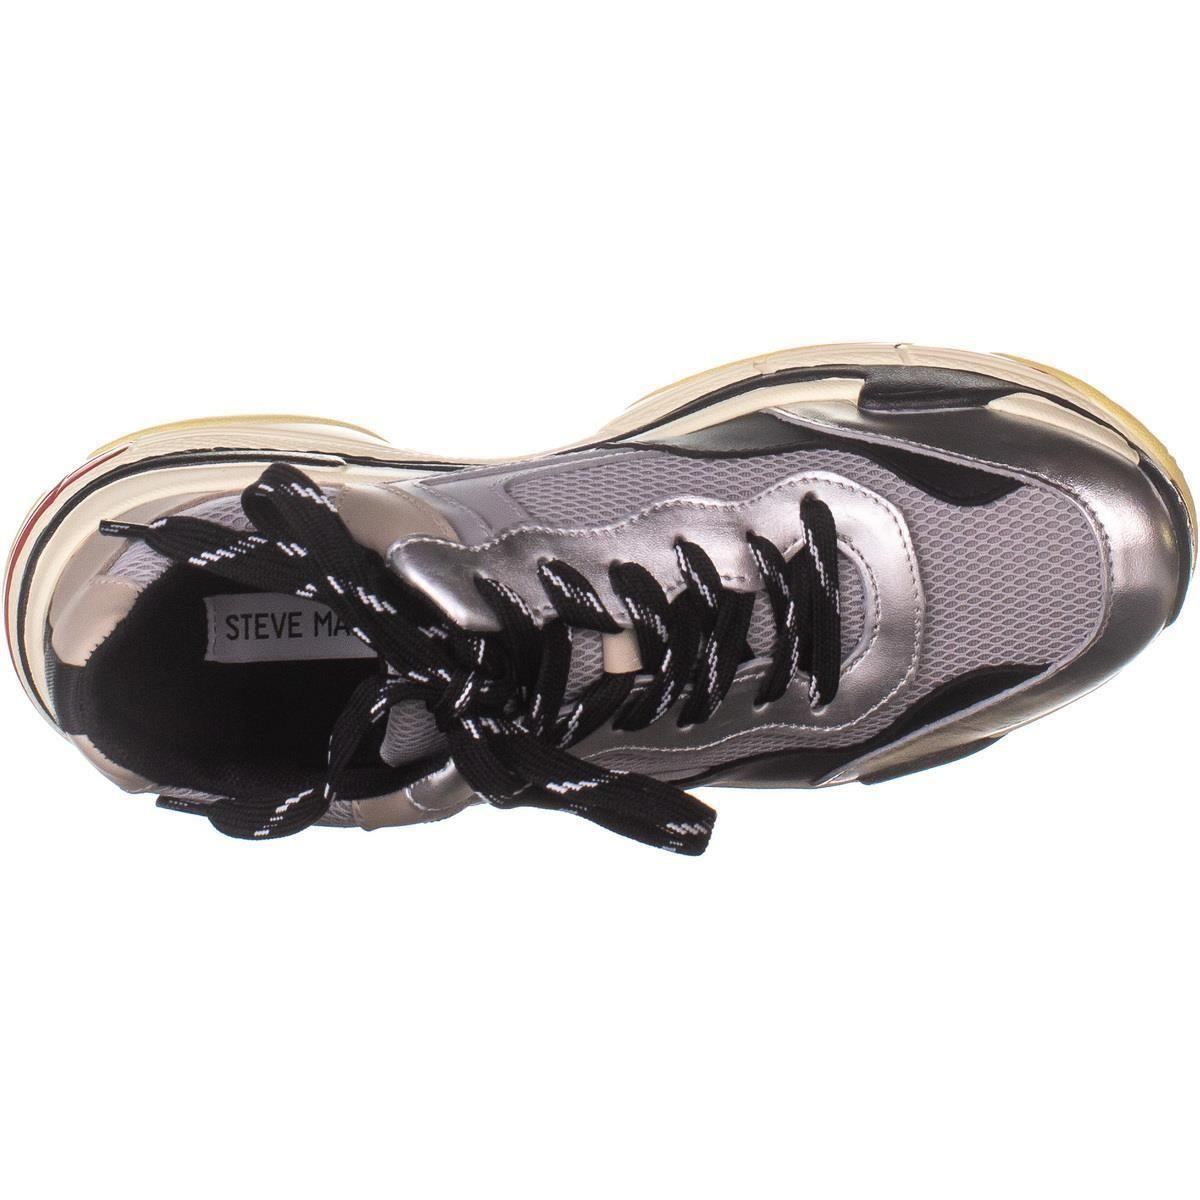 739cead1a7c Steve Madden Nassau Lace Up Sneakers in Gray - Lyst